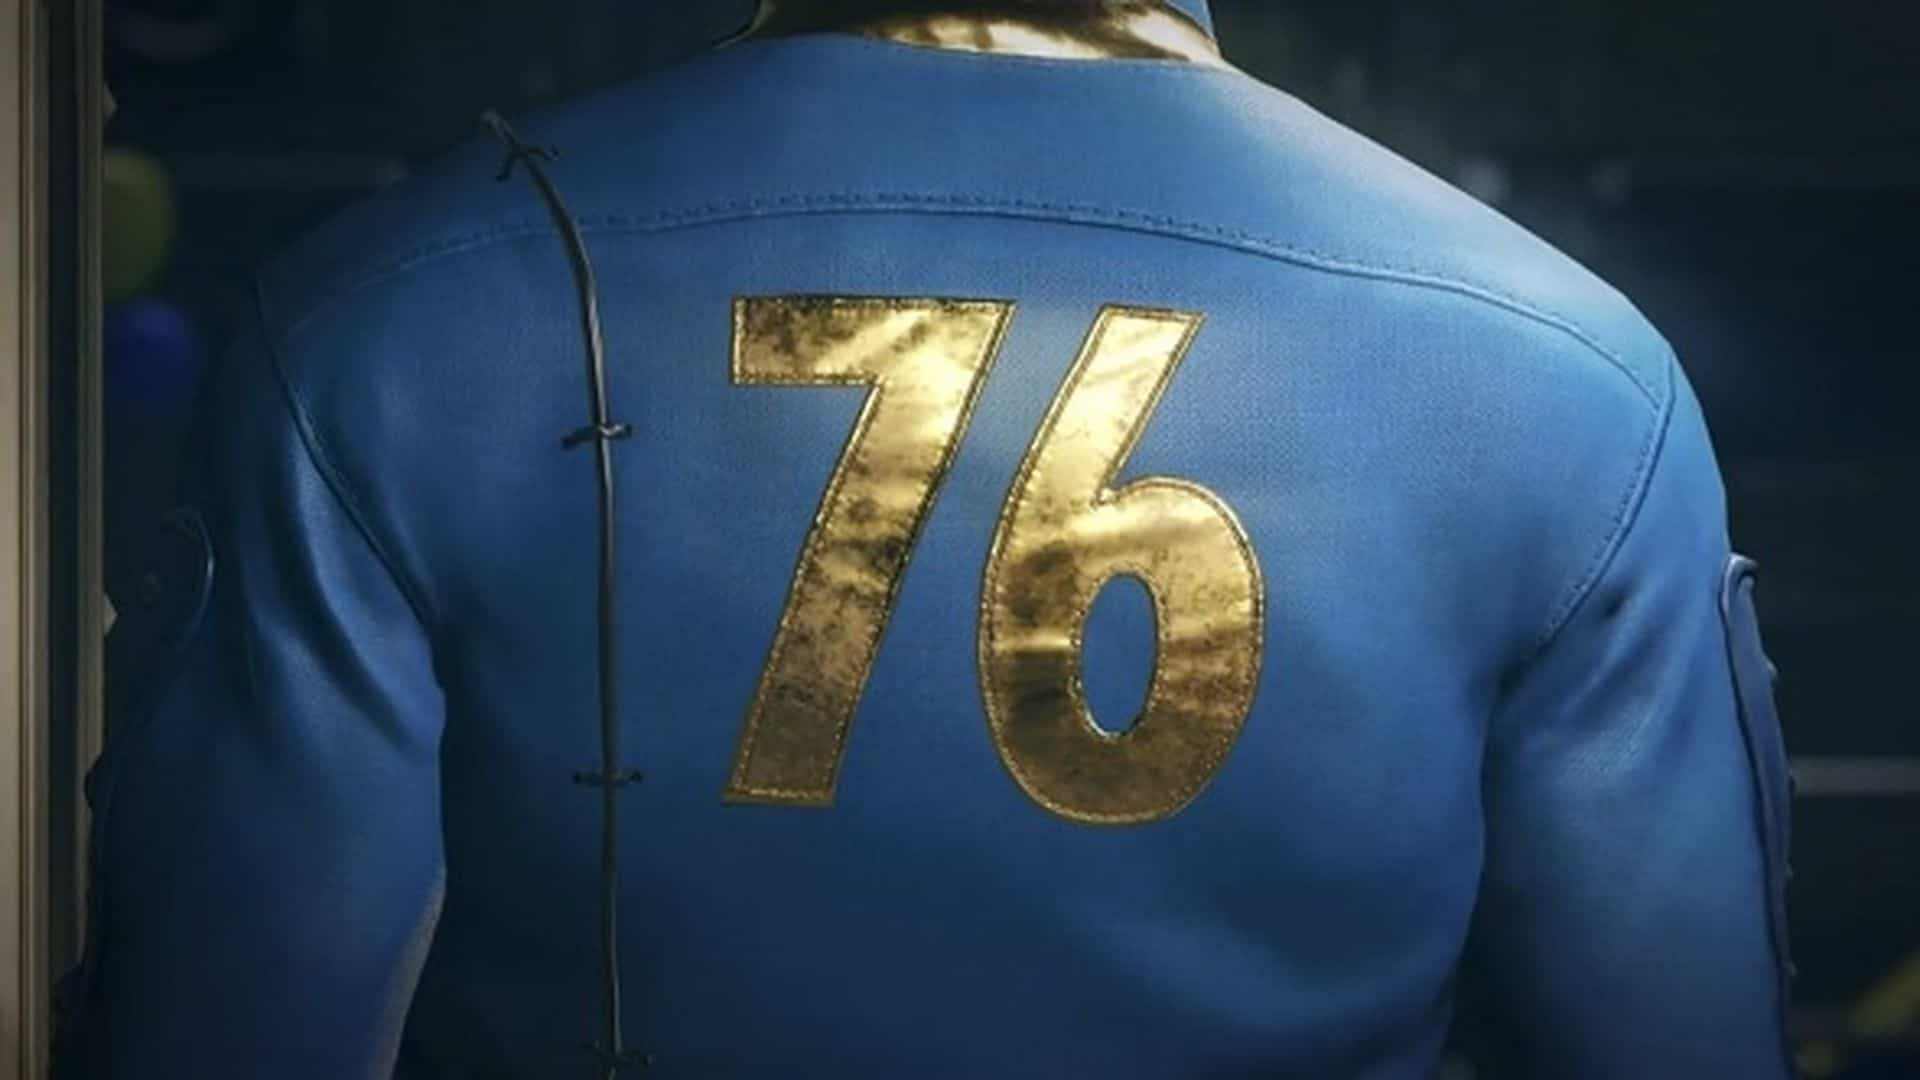 Report: Fallout 76 to Be an Online Survival RPG